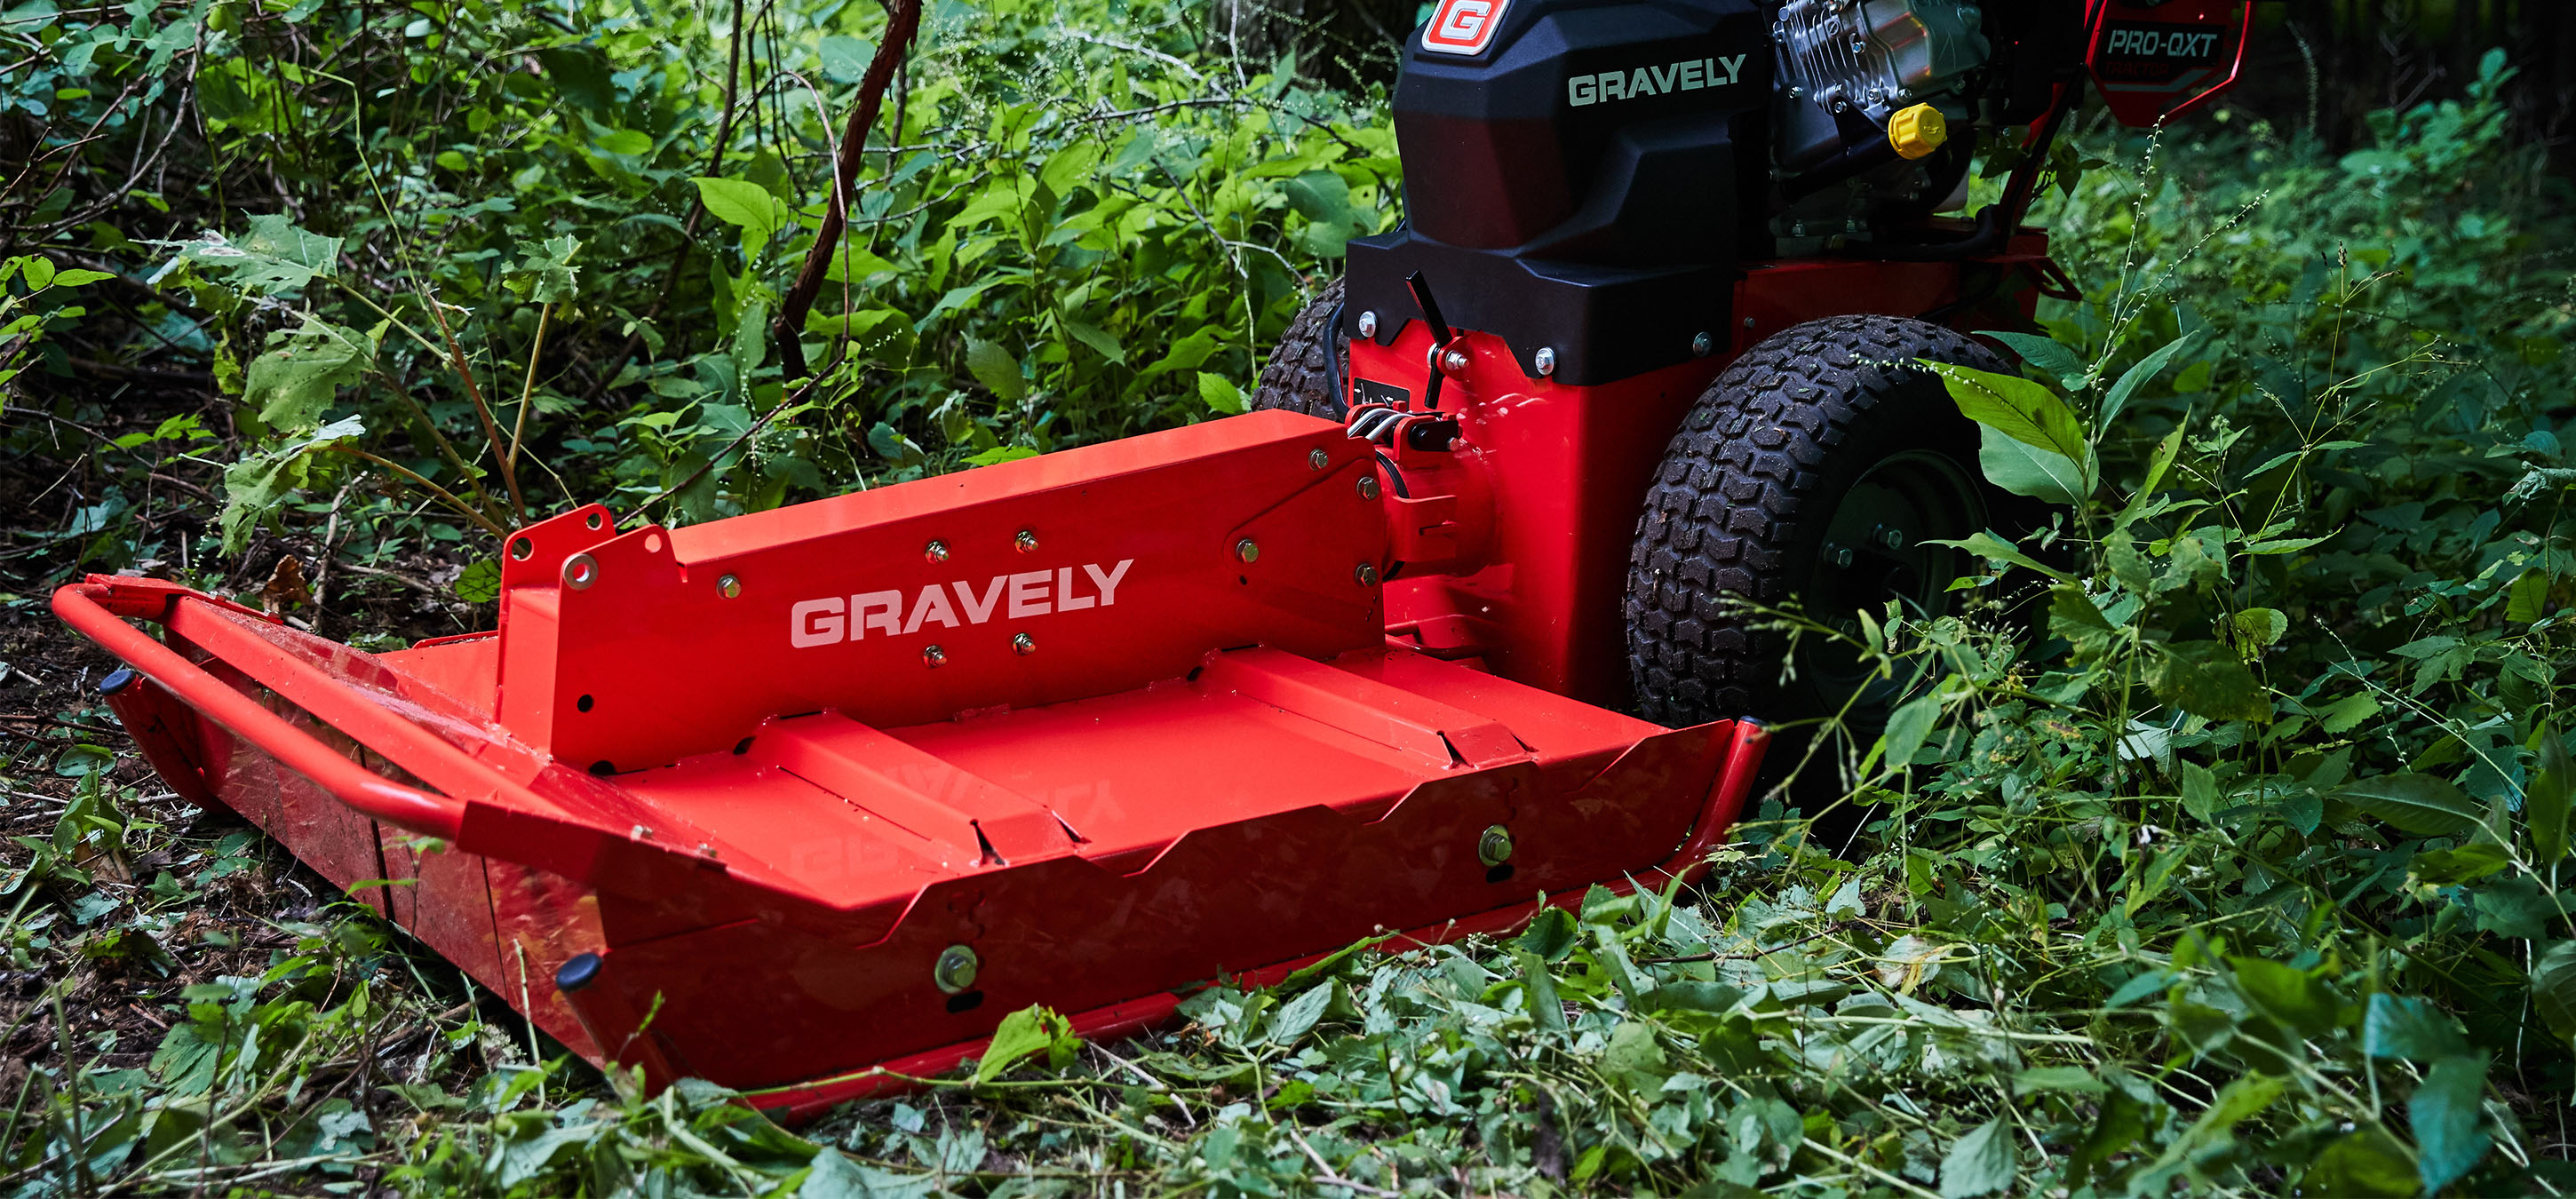 Gravely Pro-QXT Tractor close up in the shrubs in Lancaster, NH